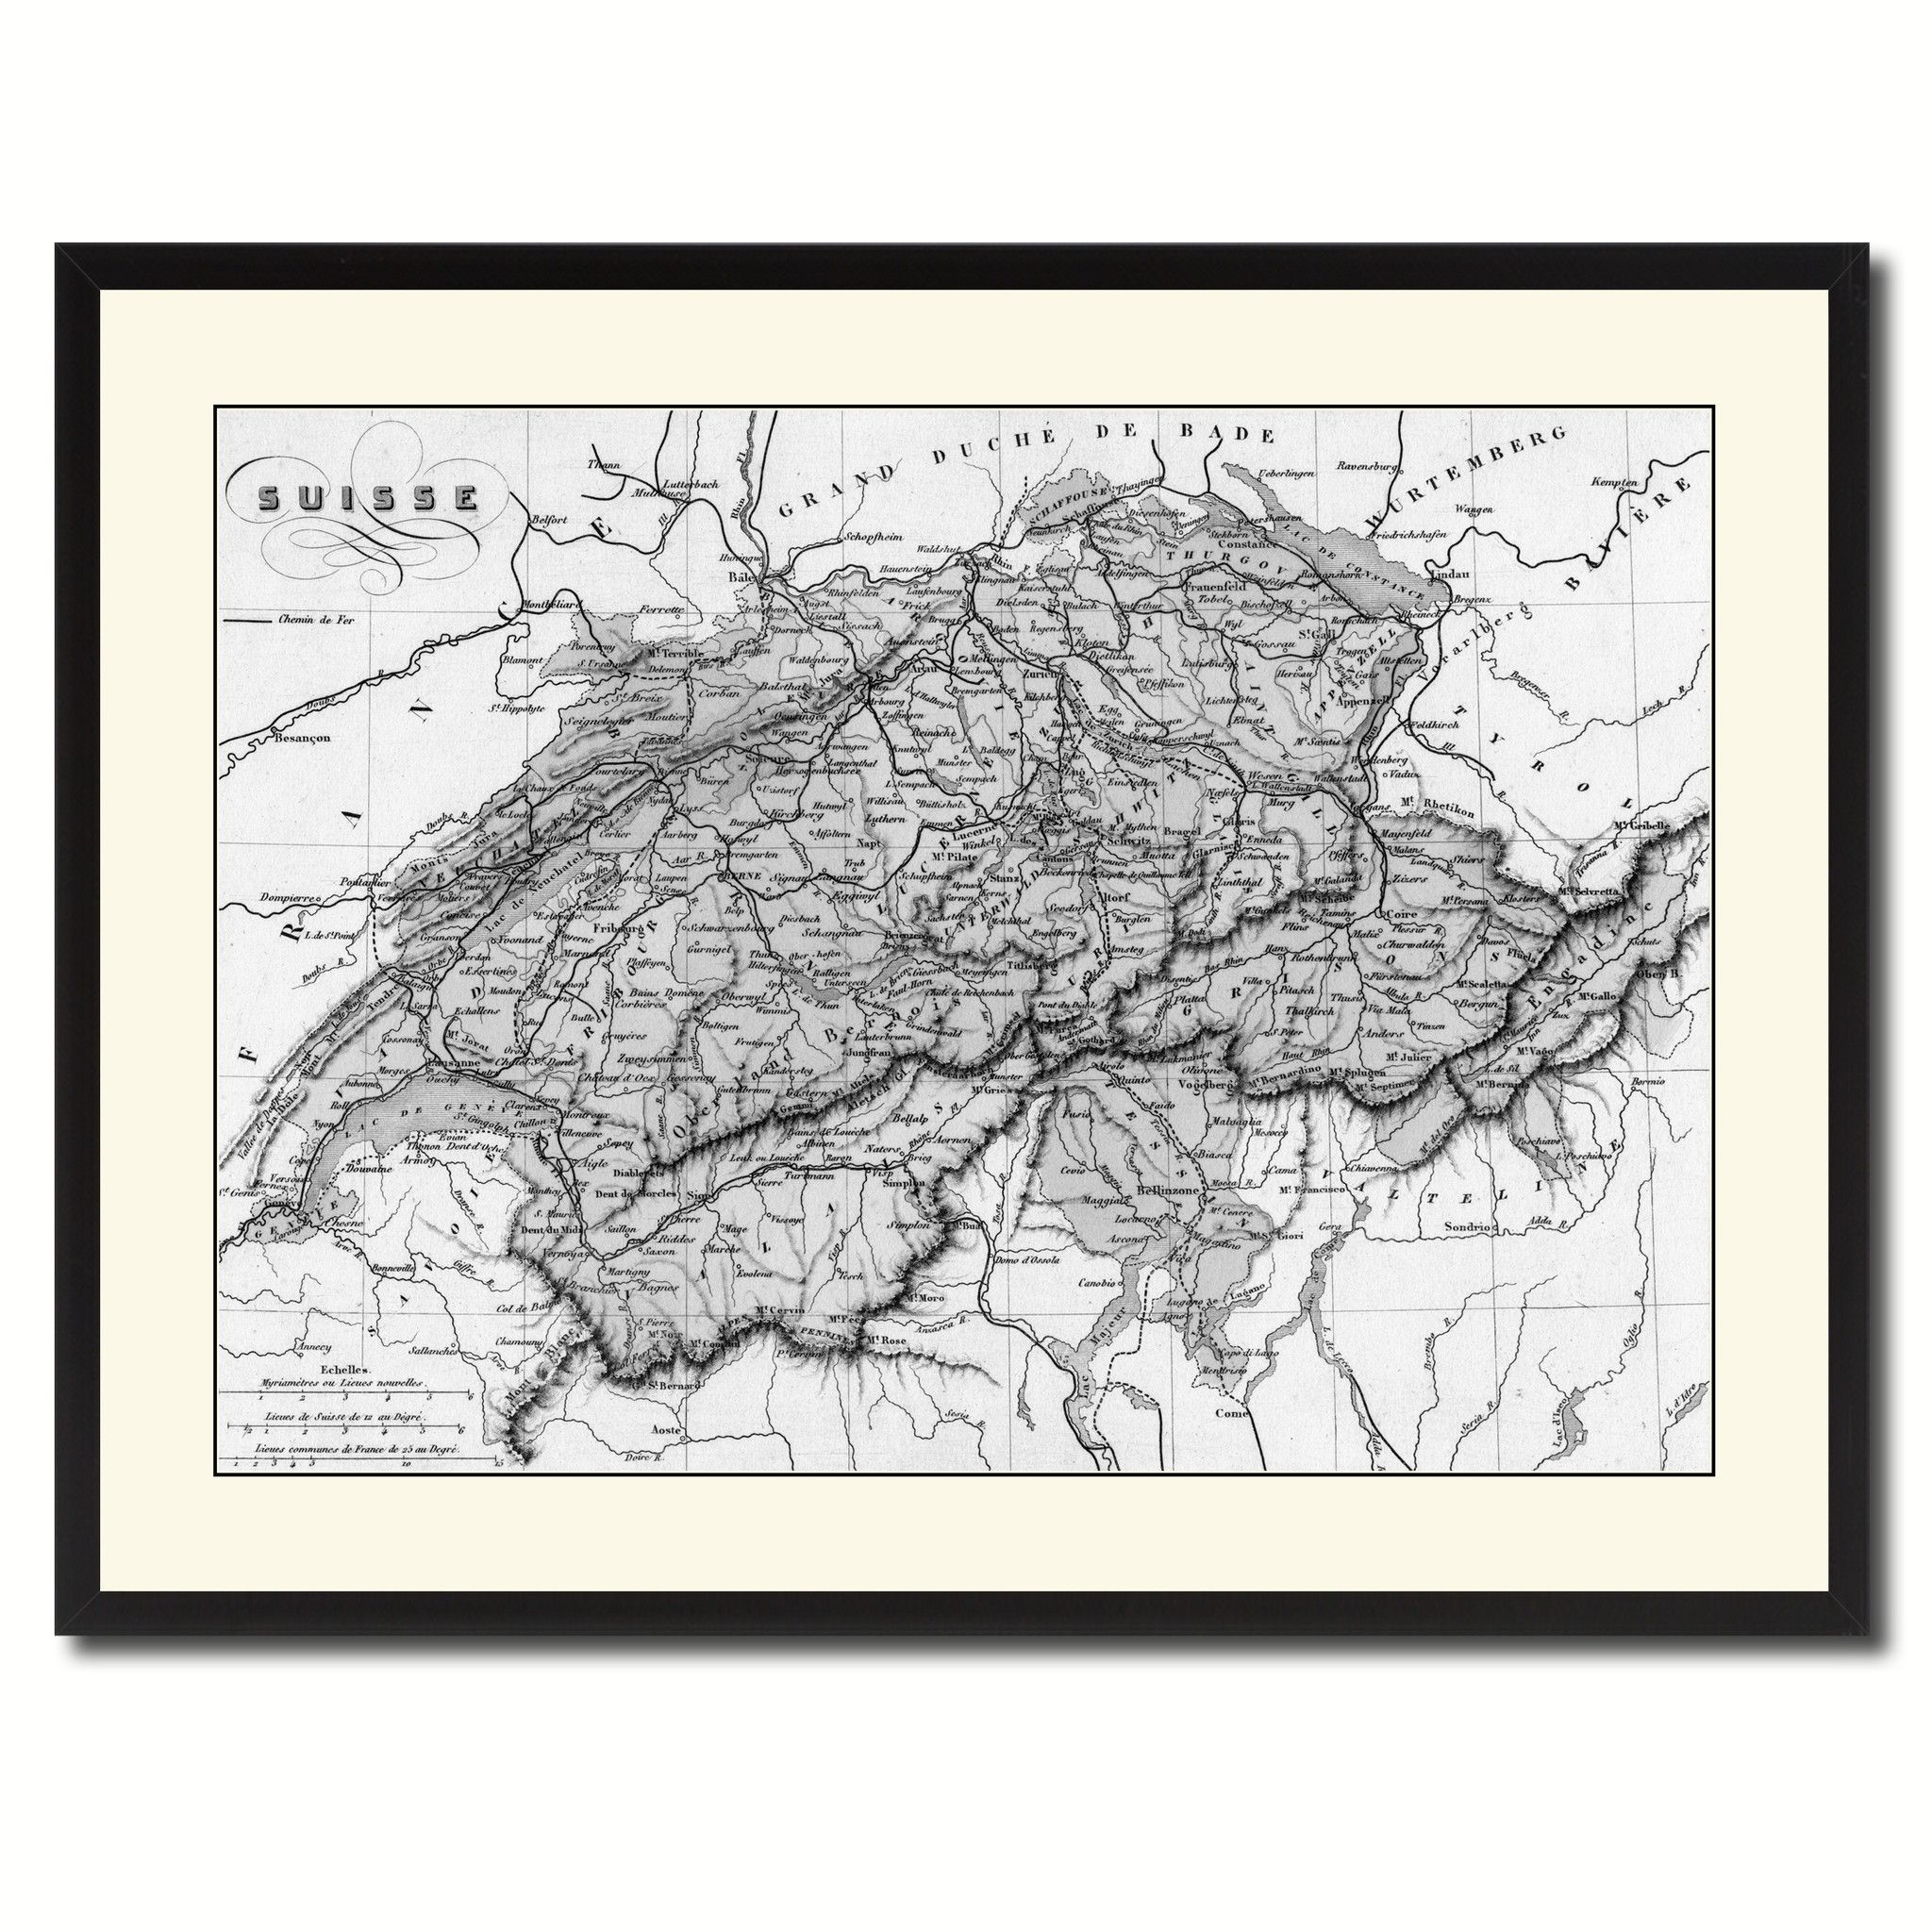 Home interiors and gifts framed art - Switzerland Vintage B W Map Canvas Print Picture Frame Home Decor Wall Art Gift Ideas